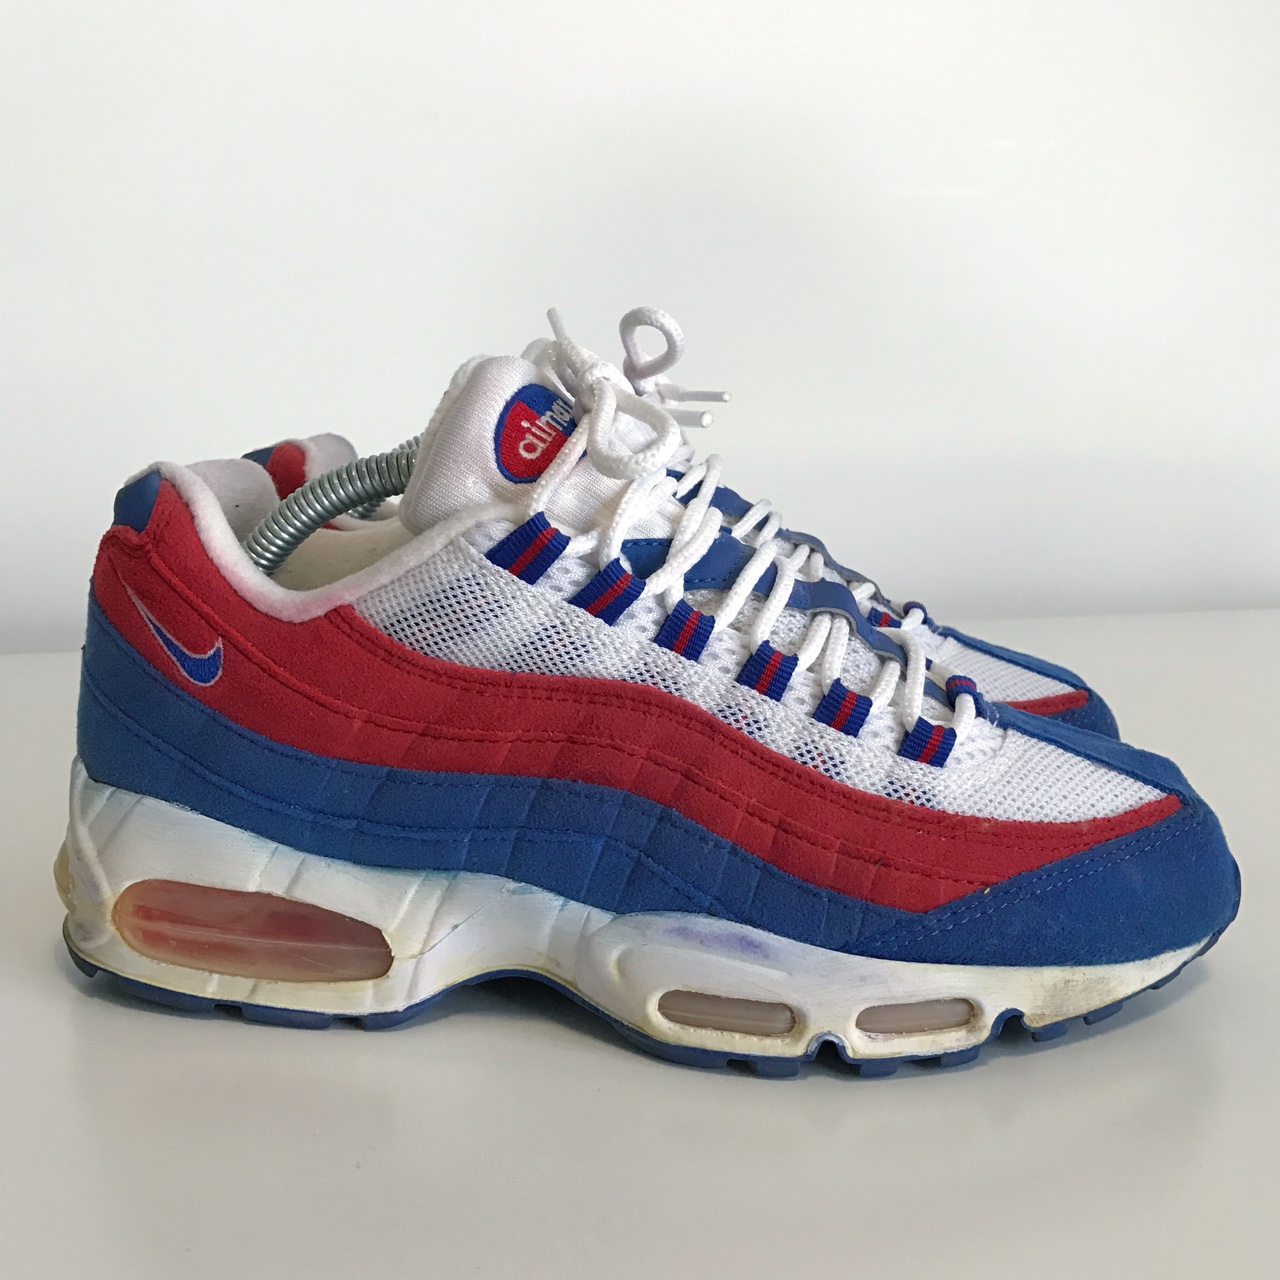 air max 95 independence day 2004